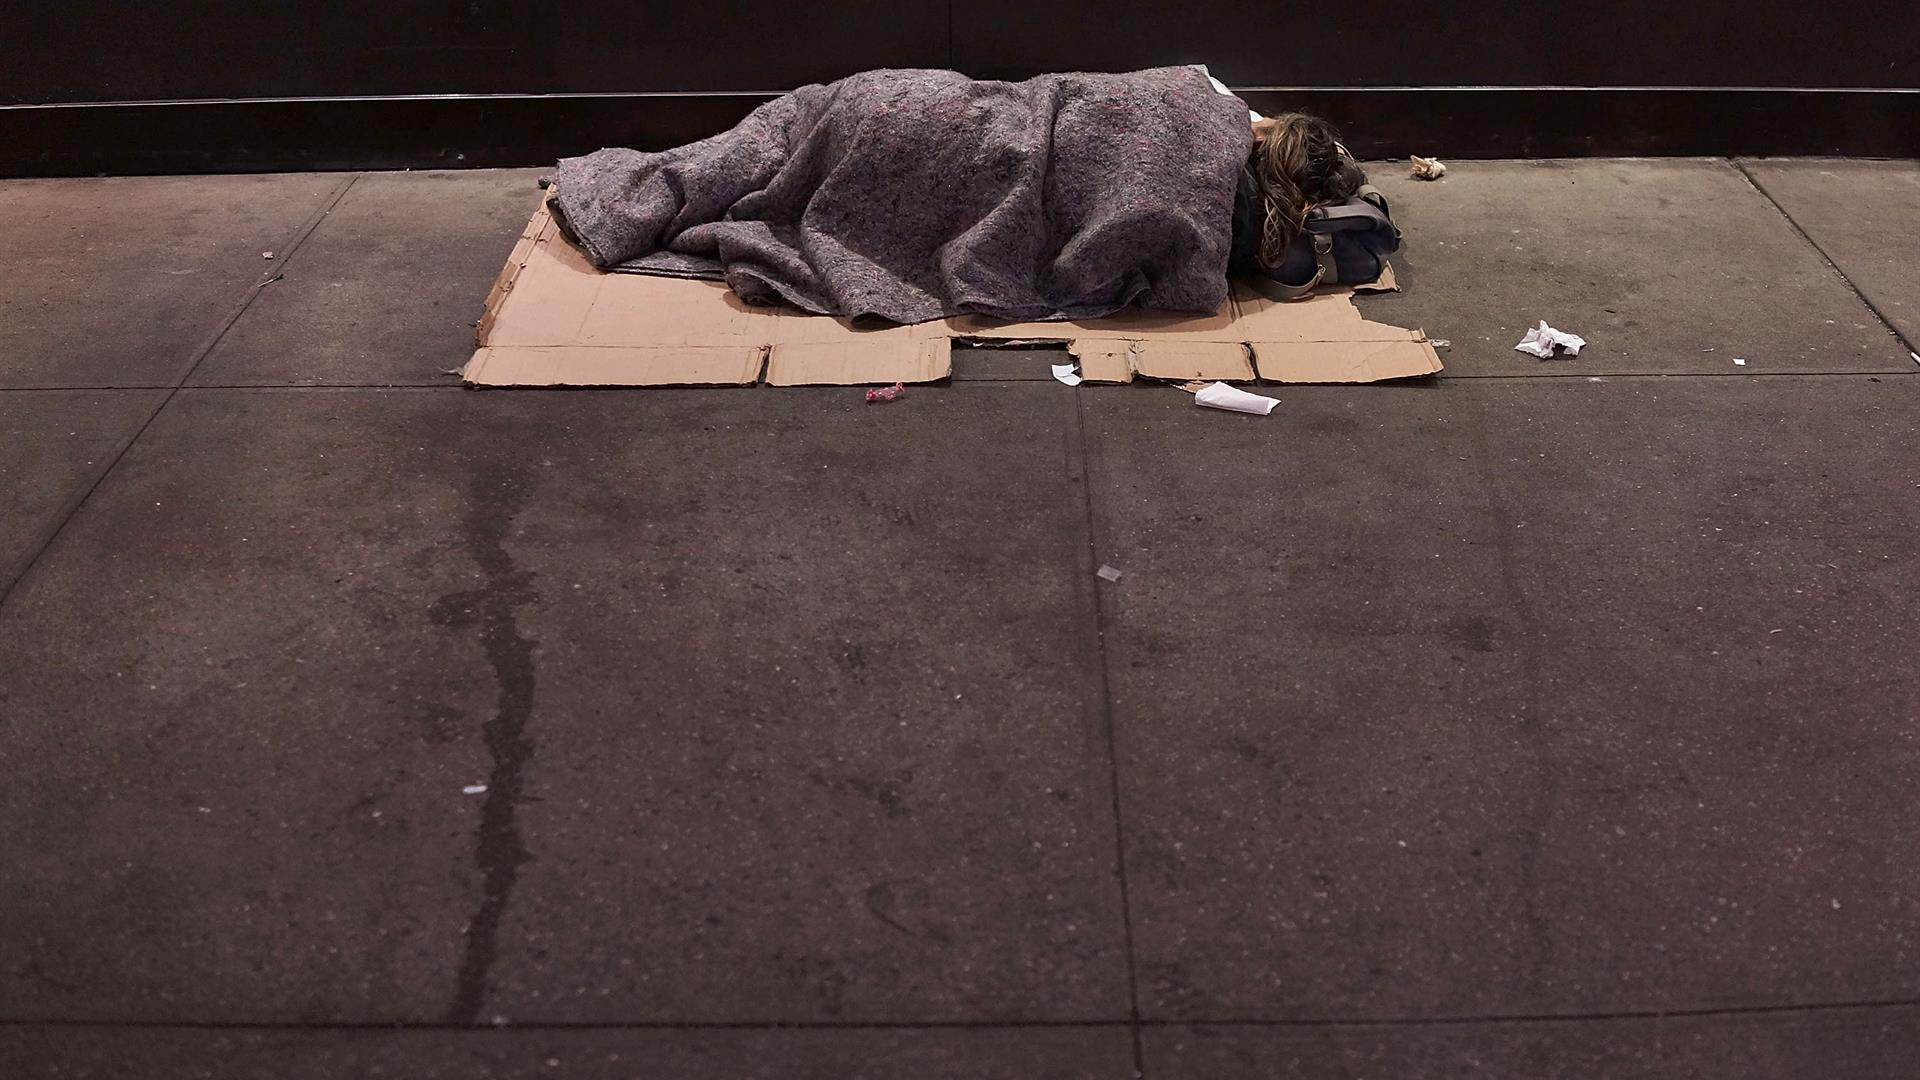 Spencer Platt:Getty Images Homeless